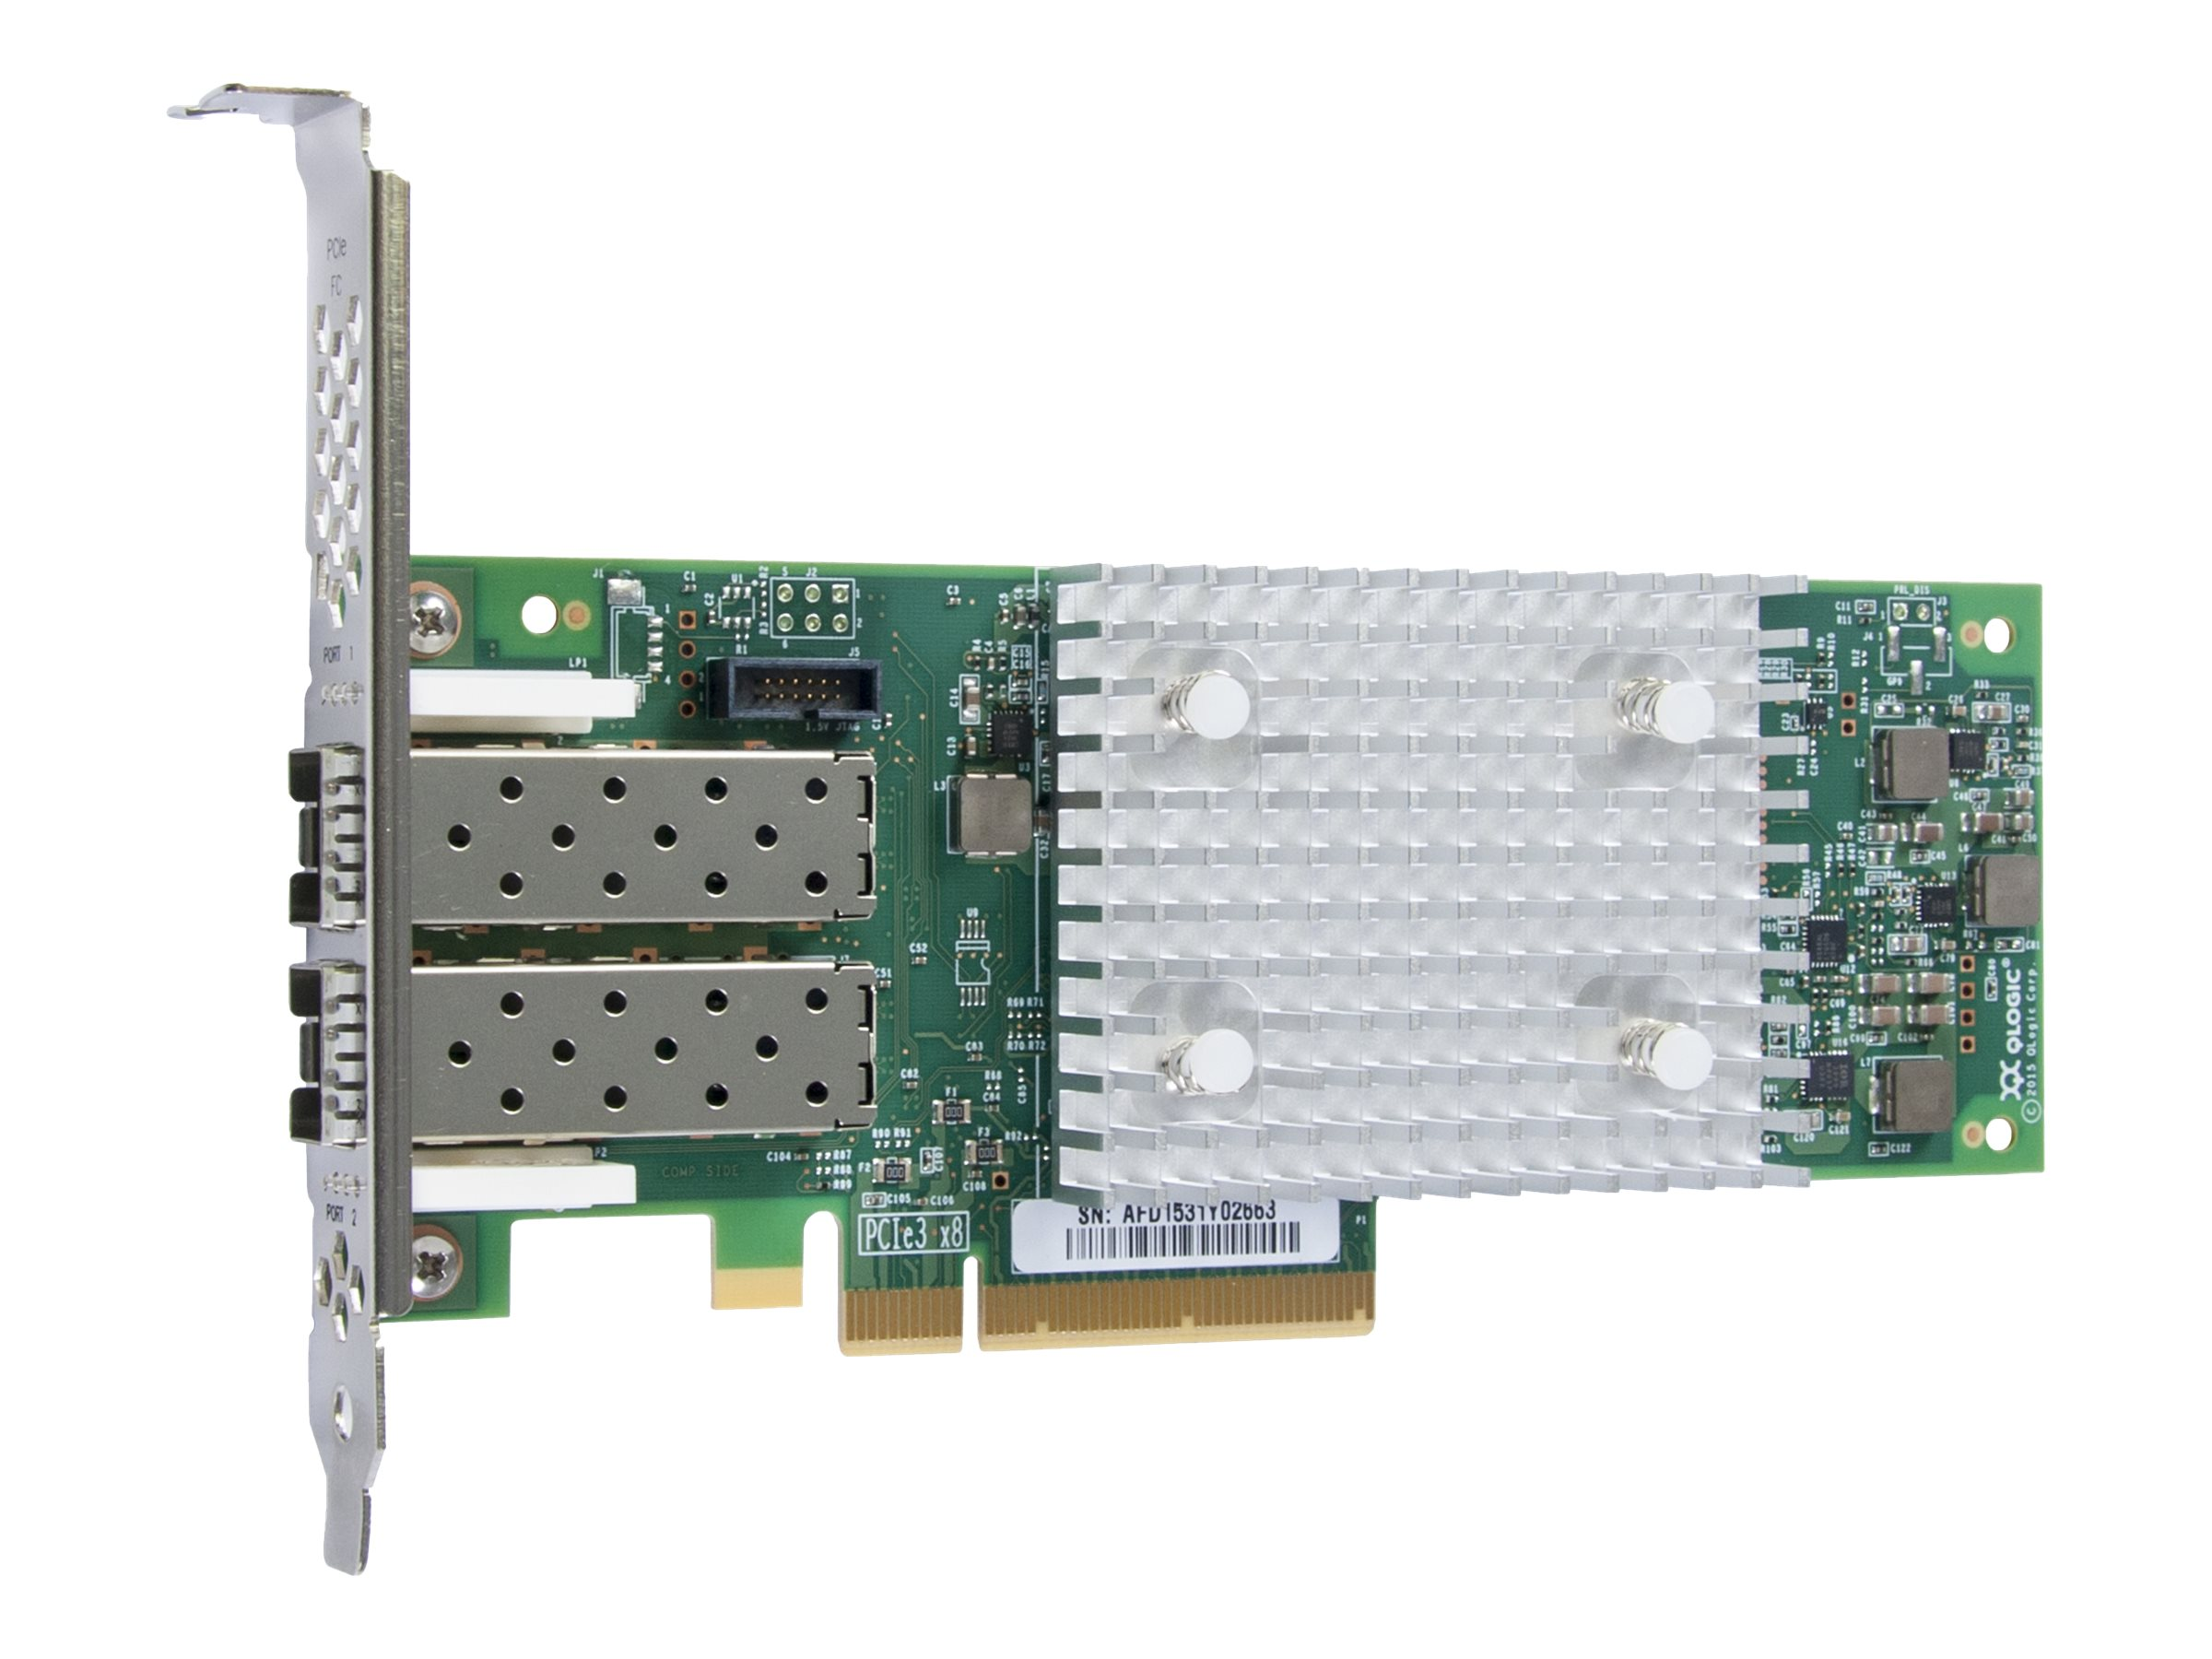 Fujitsu Qlogic QLE2692 - Hostbus-Adapter - PCIe 3.0 x8 Low-Profile